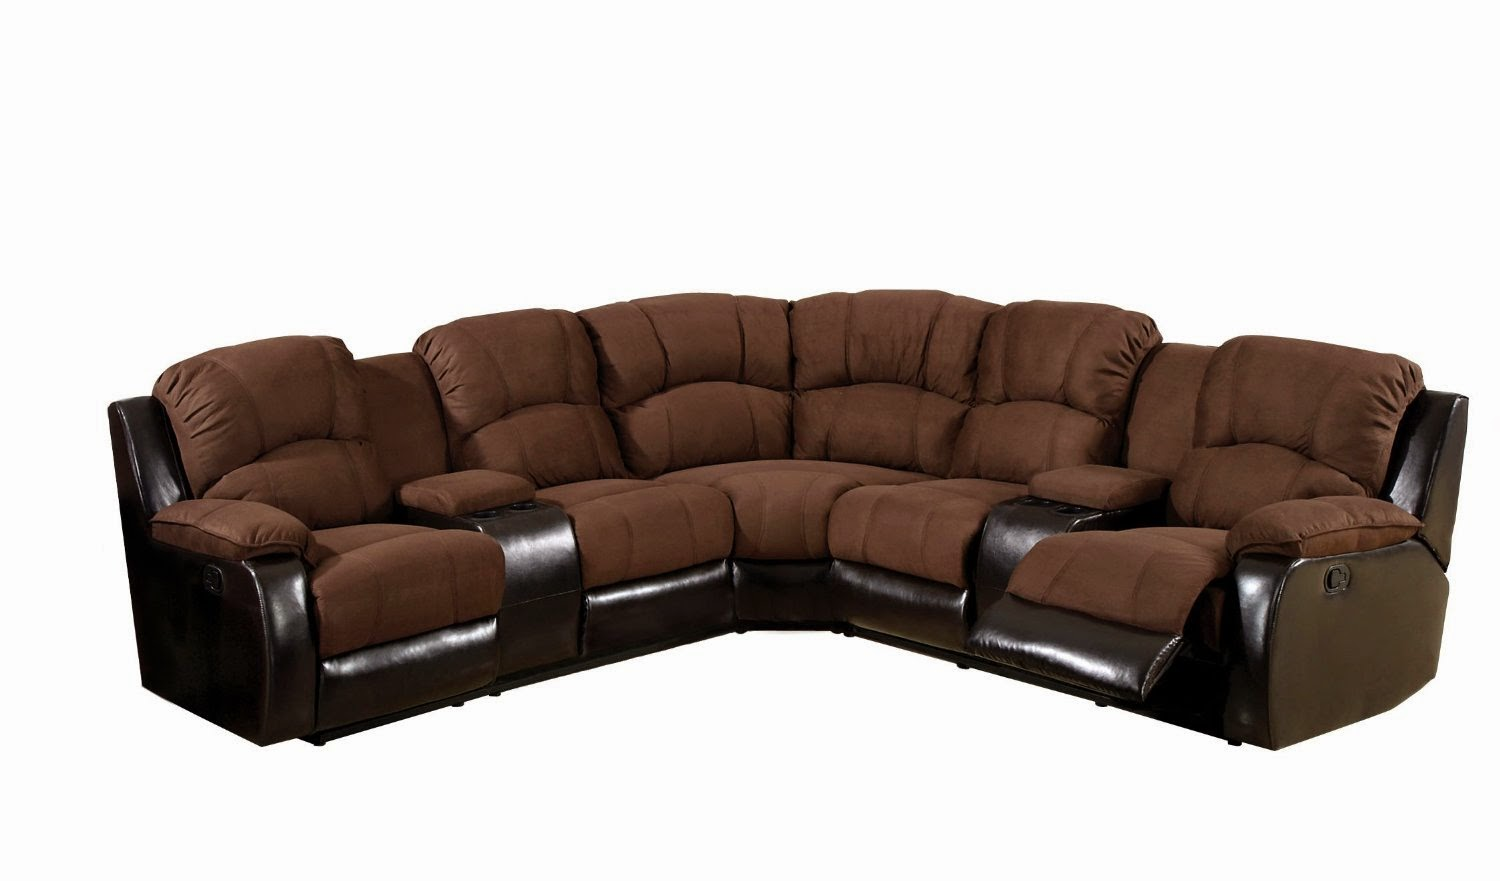 Sectional With Sleeper Sofa And Recliner Highly Sprung Oxford Bed Best Brand Recommendation Wanted Brown